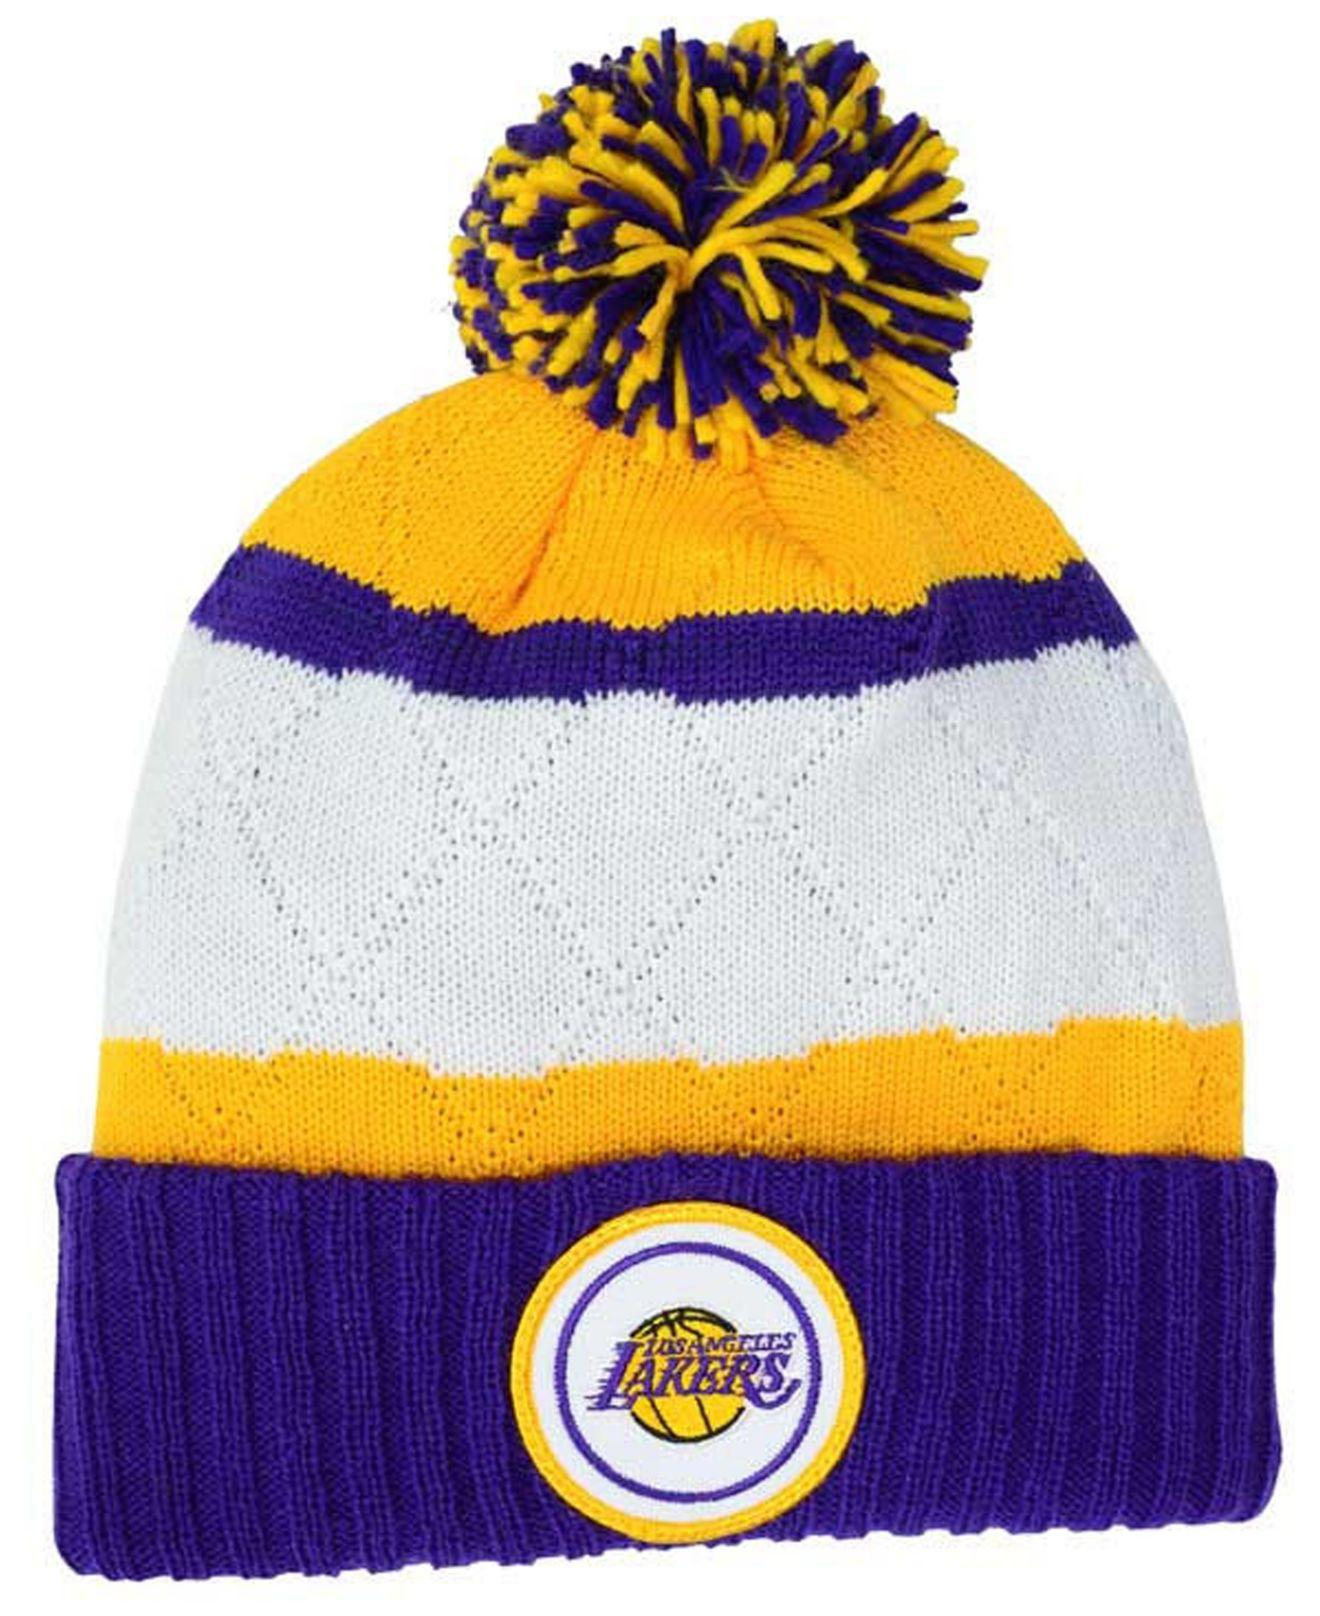 739de669e81 ... cheap lyst mitchell ness quilted hi five knit hat in purple for men  01d18 974b1